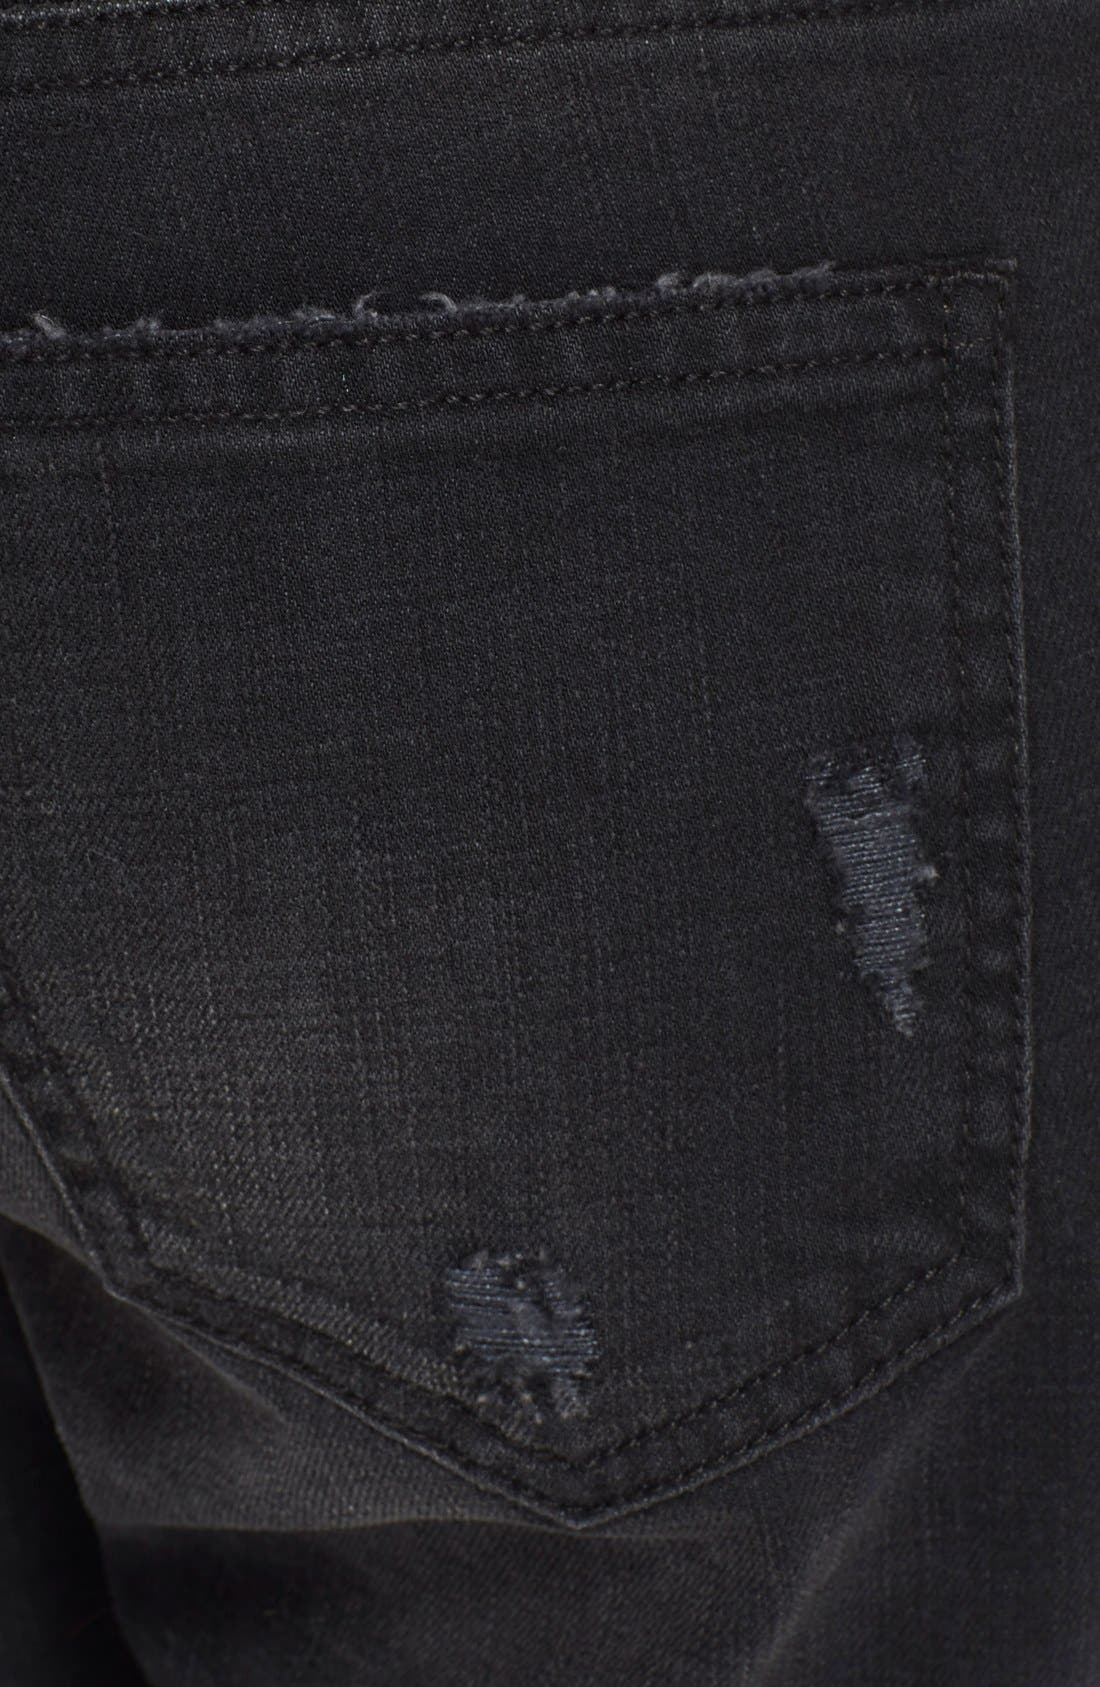 Alternate Image 3  - Current/Elliott 'The Cropped Straight' Destroyed Jeans (Townhouse Destroy) (Nordstrom Exclusive)